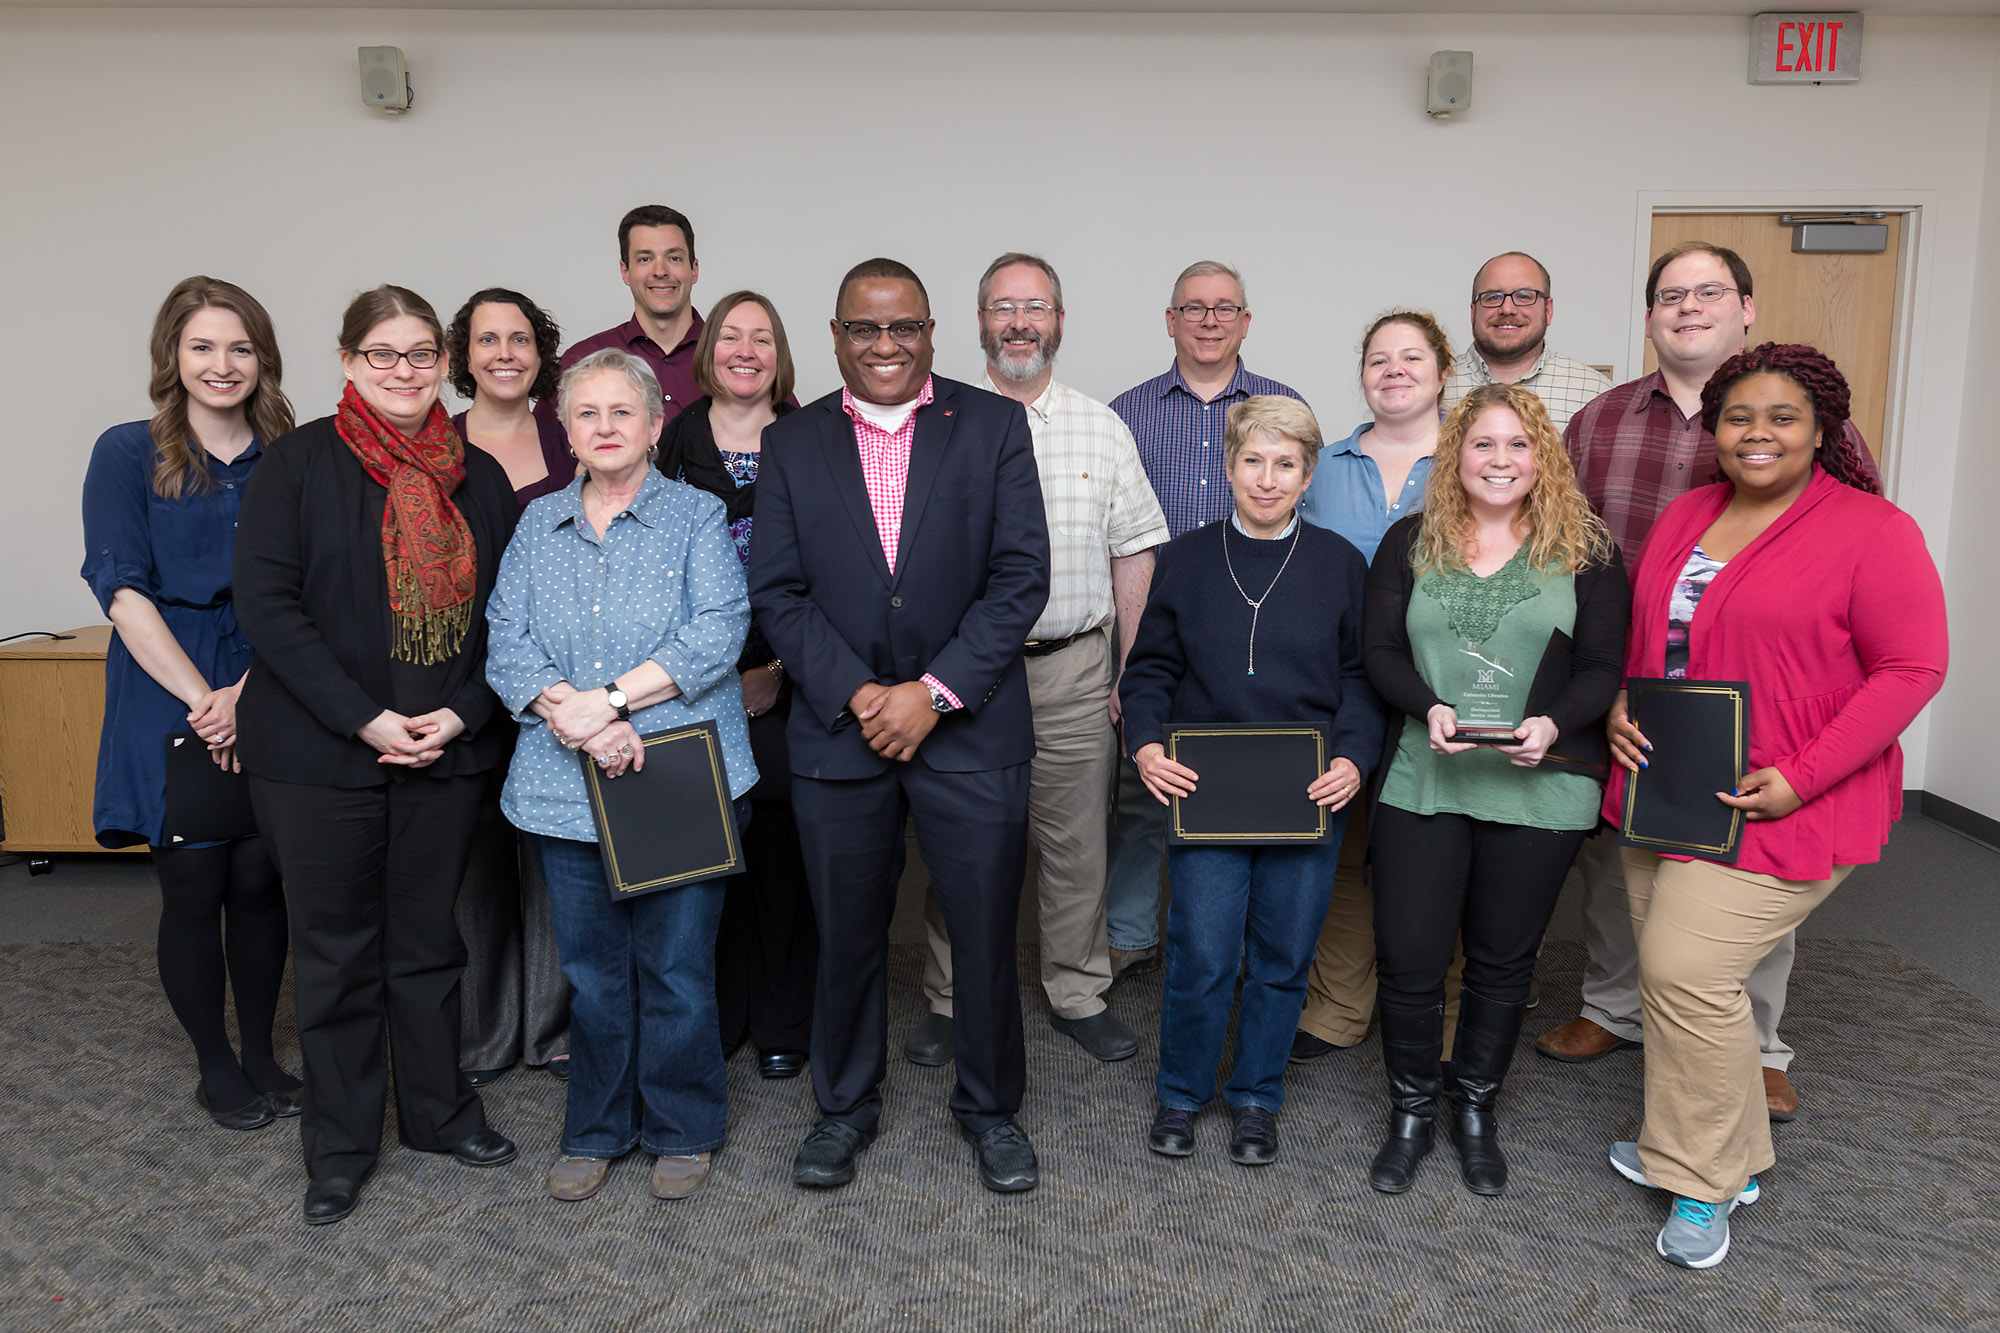 The 2018 nominees for the Libraries Distinguished Service Award gather for a group photograph with Dean and University Librarian Jerome Conley